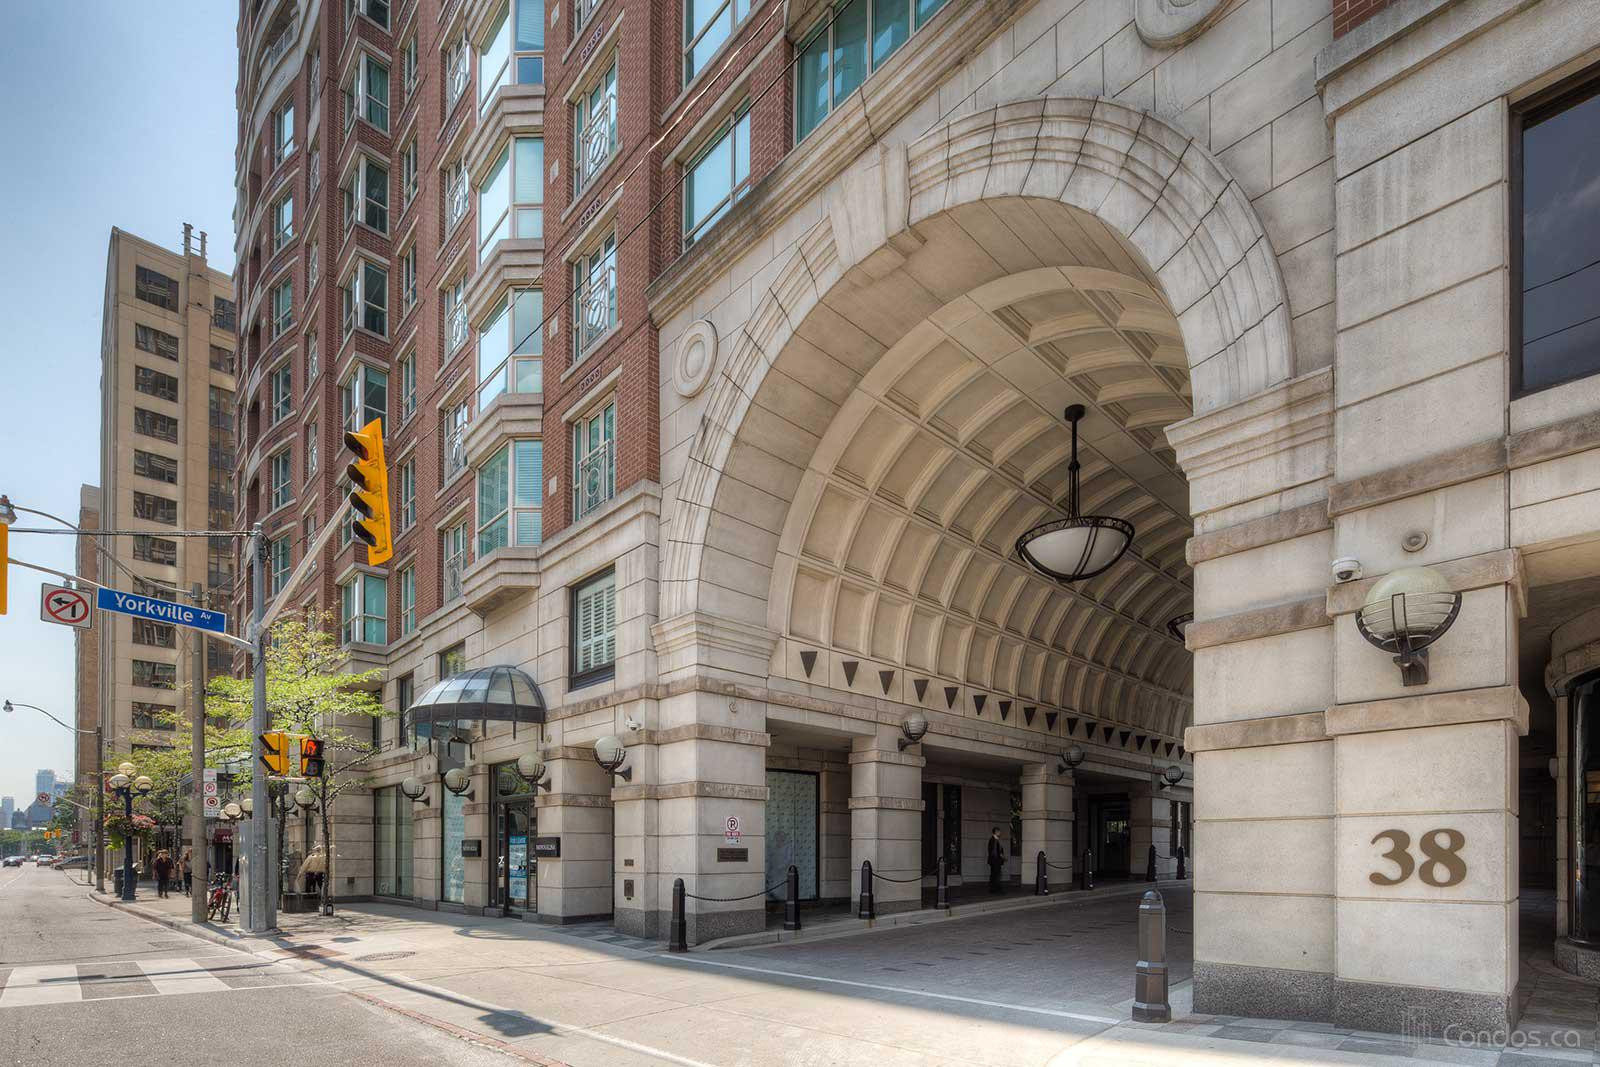 The Prince Arthur Luxury Condo in Yorkville showing exterior